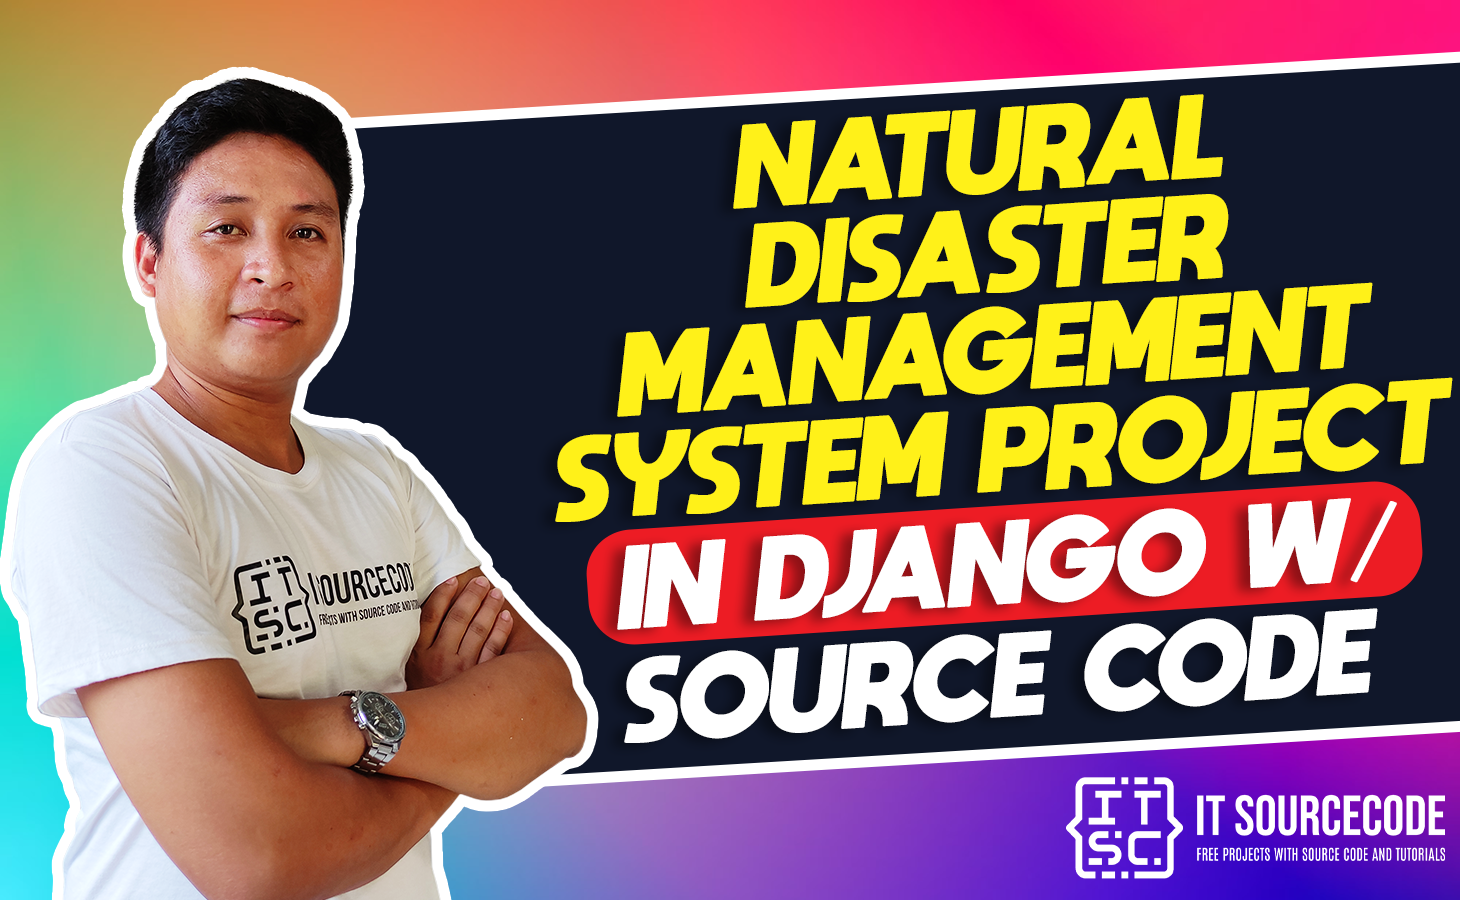 Natural Disaster Management System Project in Django with Source Code